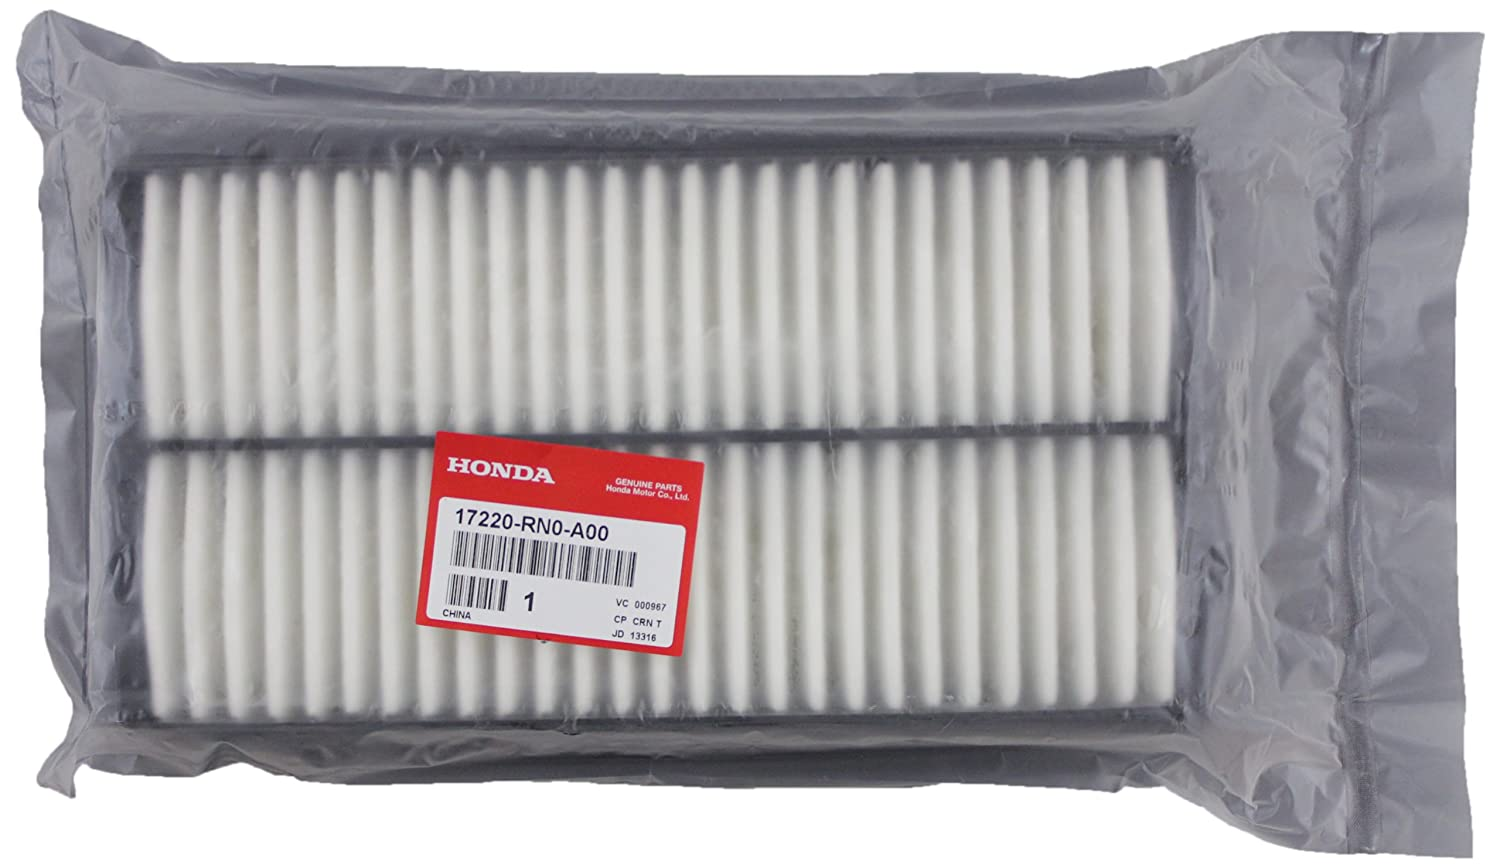 Genuine Honda Parts 17220 Rn0 A00 Air Filter For 2001 Crv Discount Factory Oem And Pilot Automotive